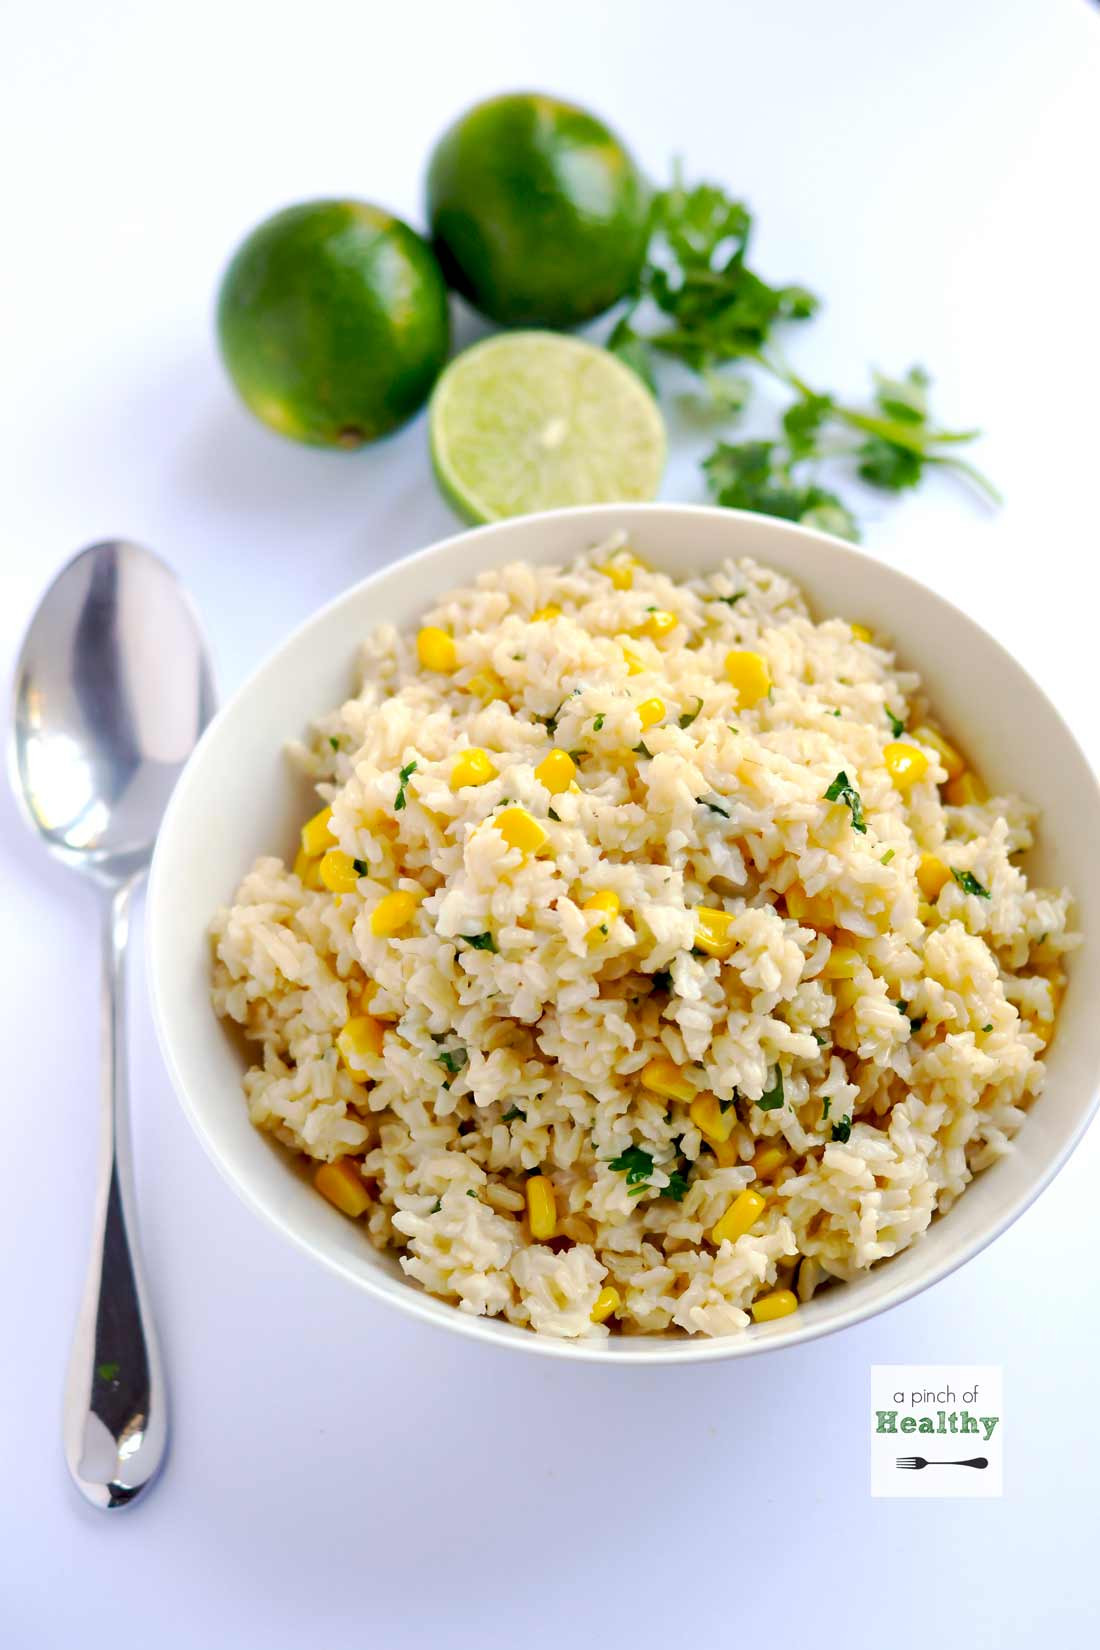 Brown Rice Healthy  Cilantro Lime Brown Rice A Pinch of Healthy